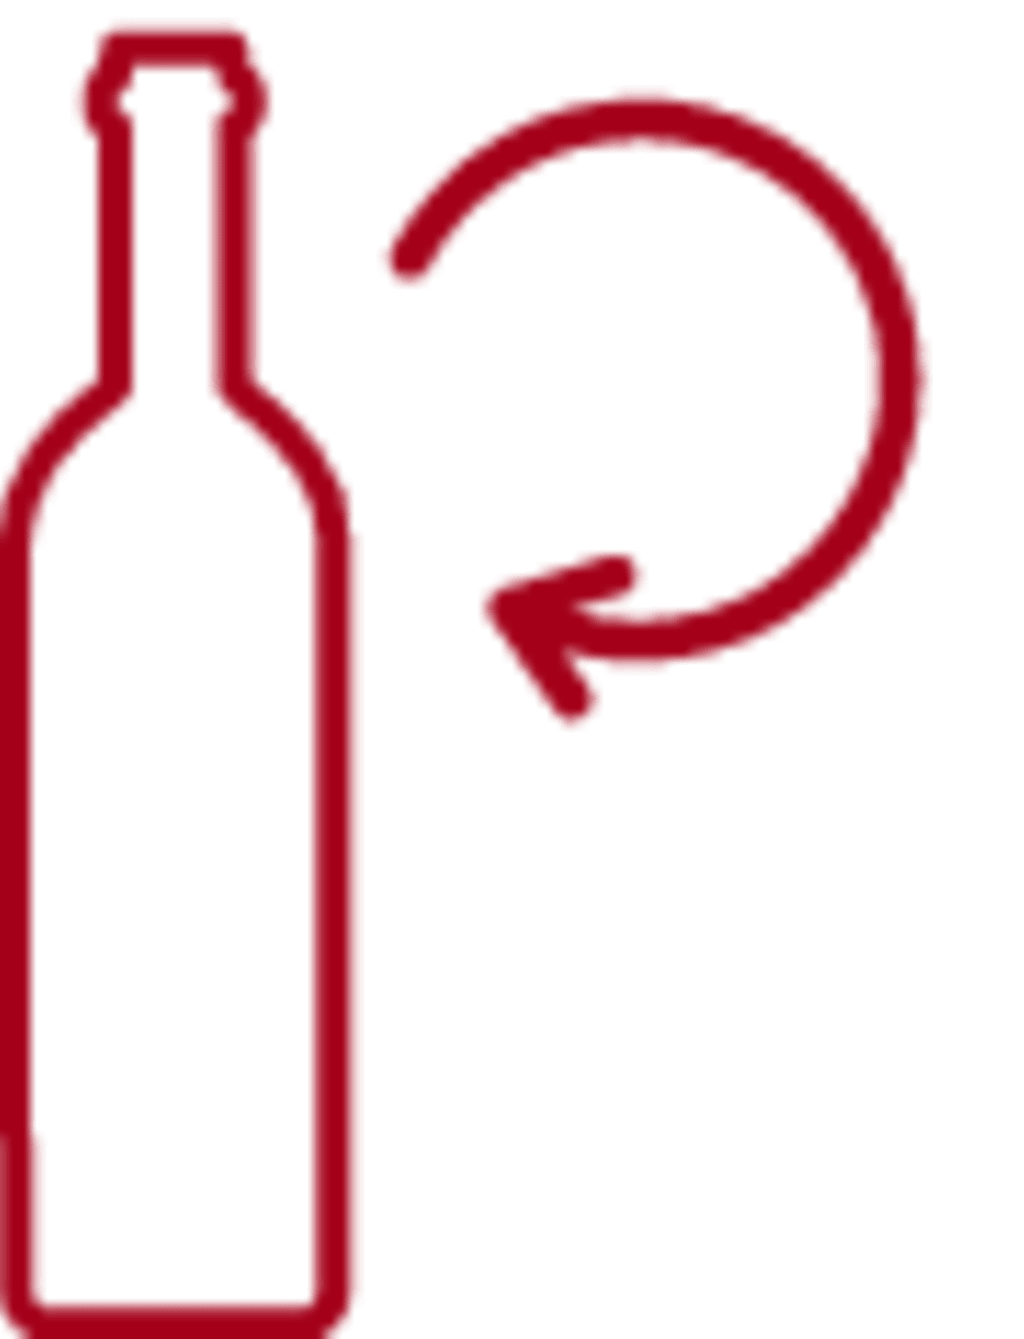 Weinabo Icon Image Red@2x